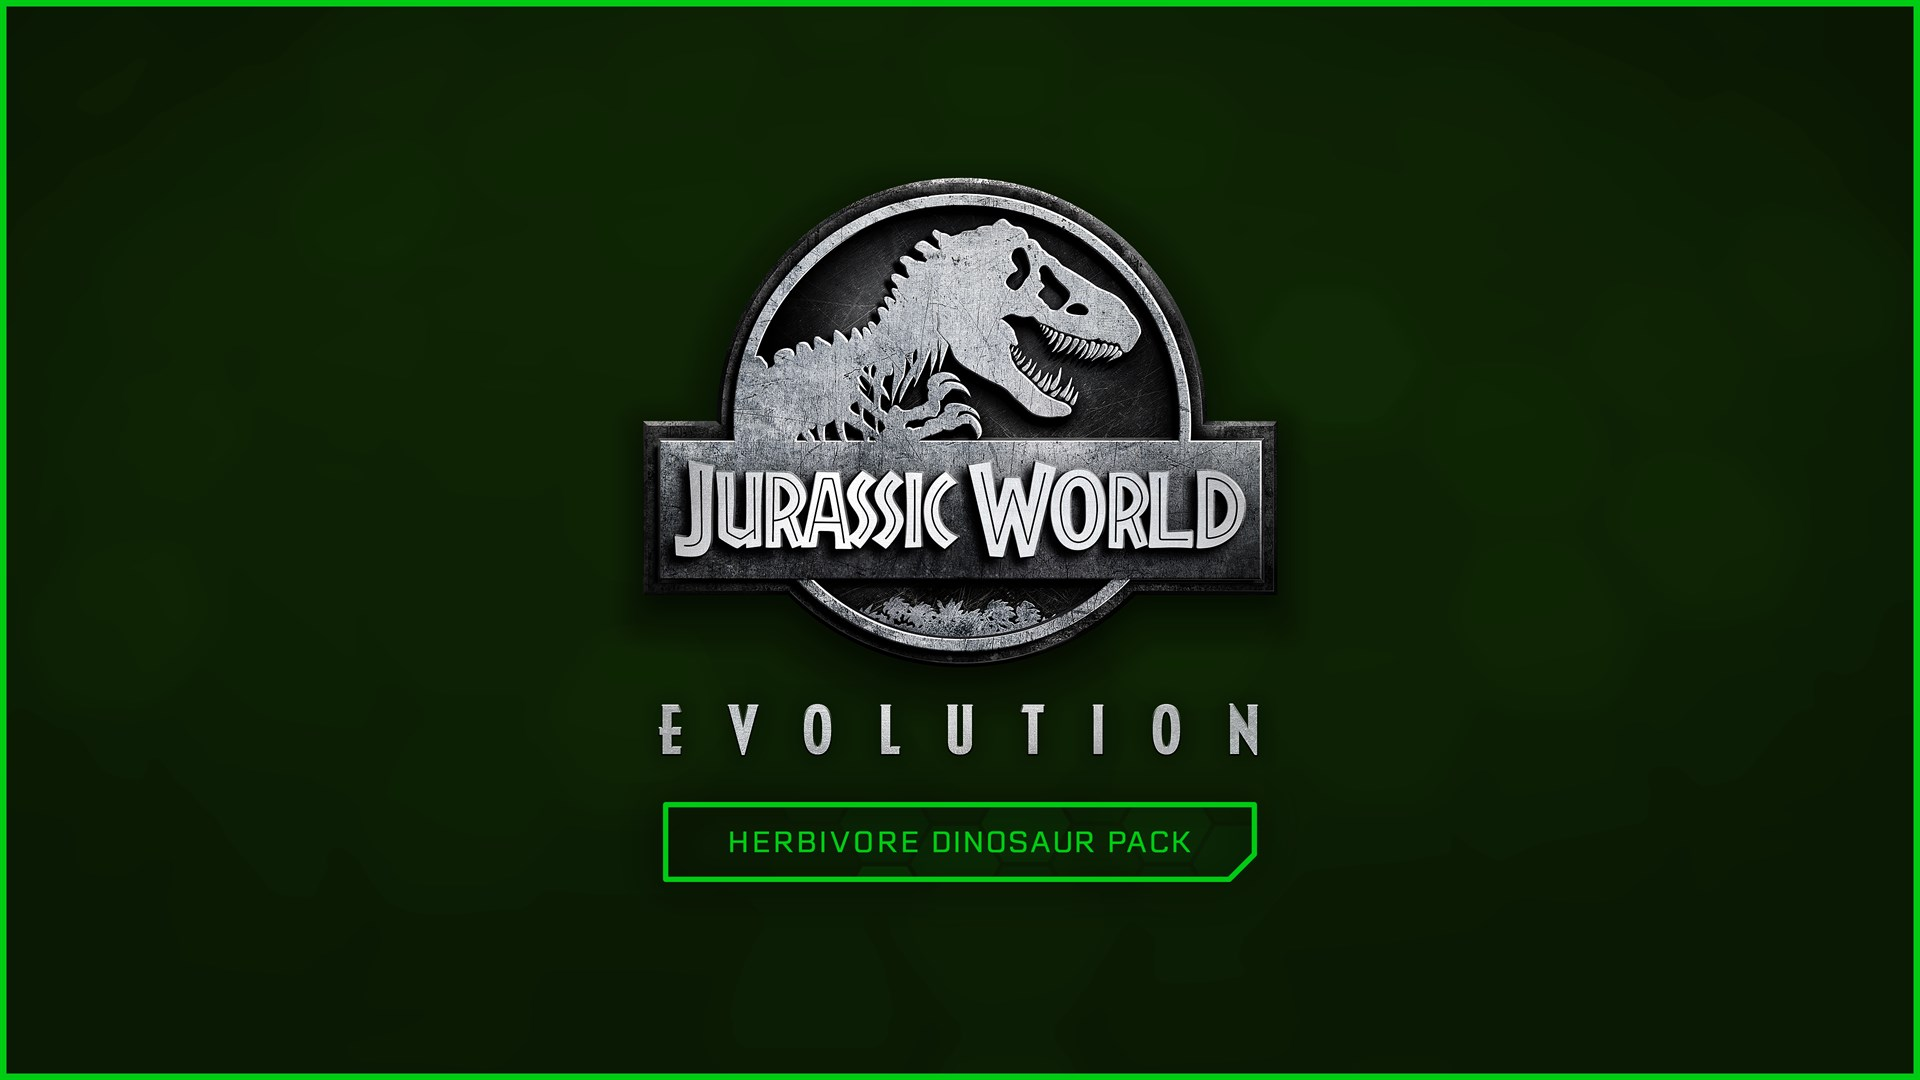 Jurassic World Evolution: Herbivore Dinosaur Pack